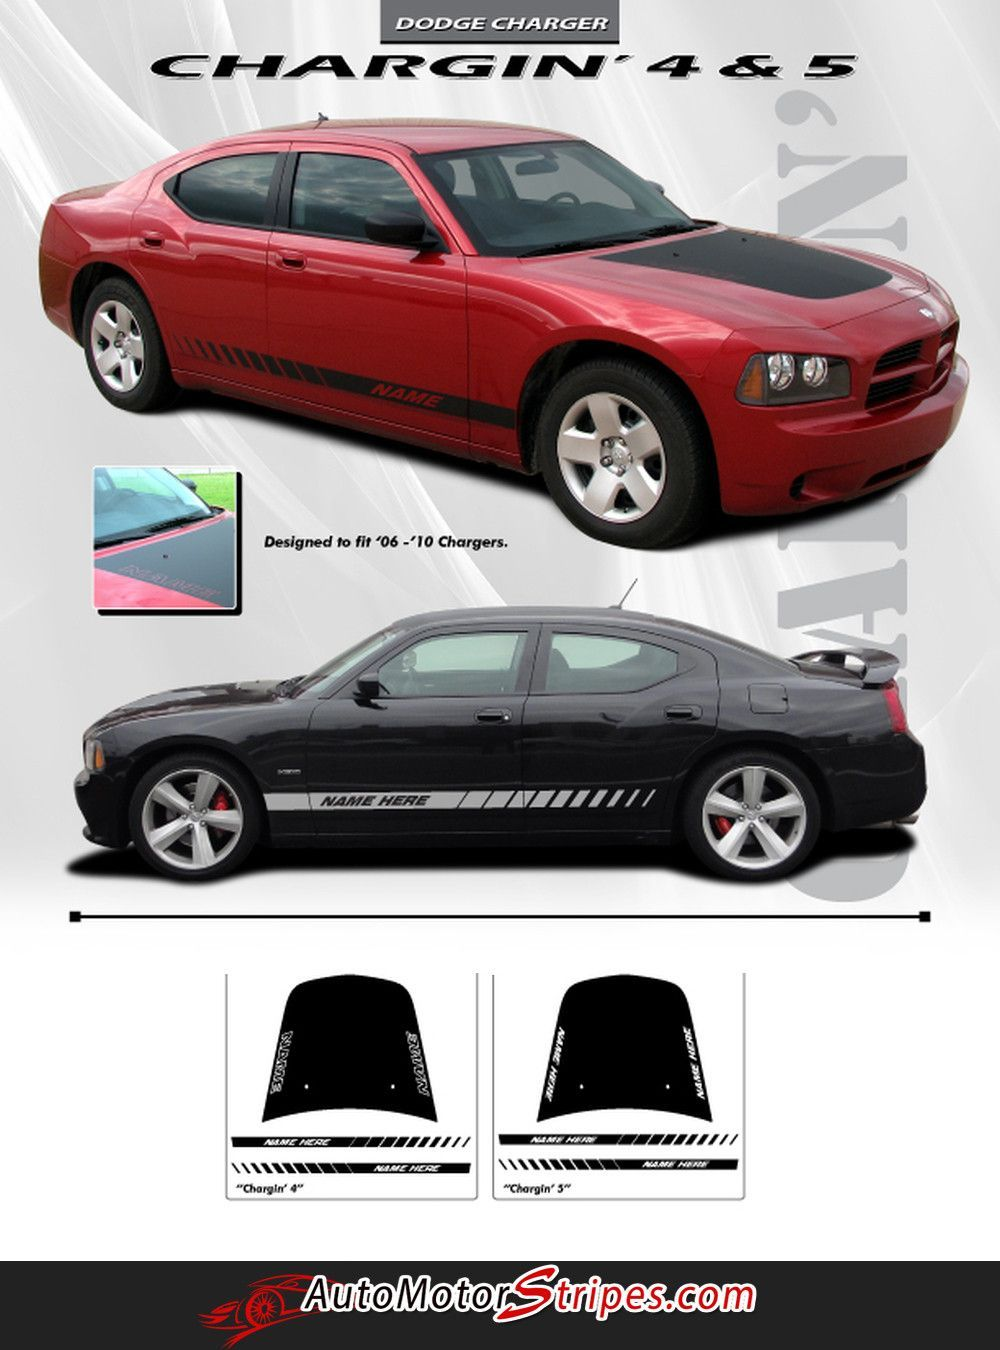 2006 2010 dodge charger chargin 4 hood lower rocker strobe hemi daytona style vinyl stripes 3m decals kit dodge charger dodge and dodge dart